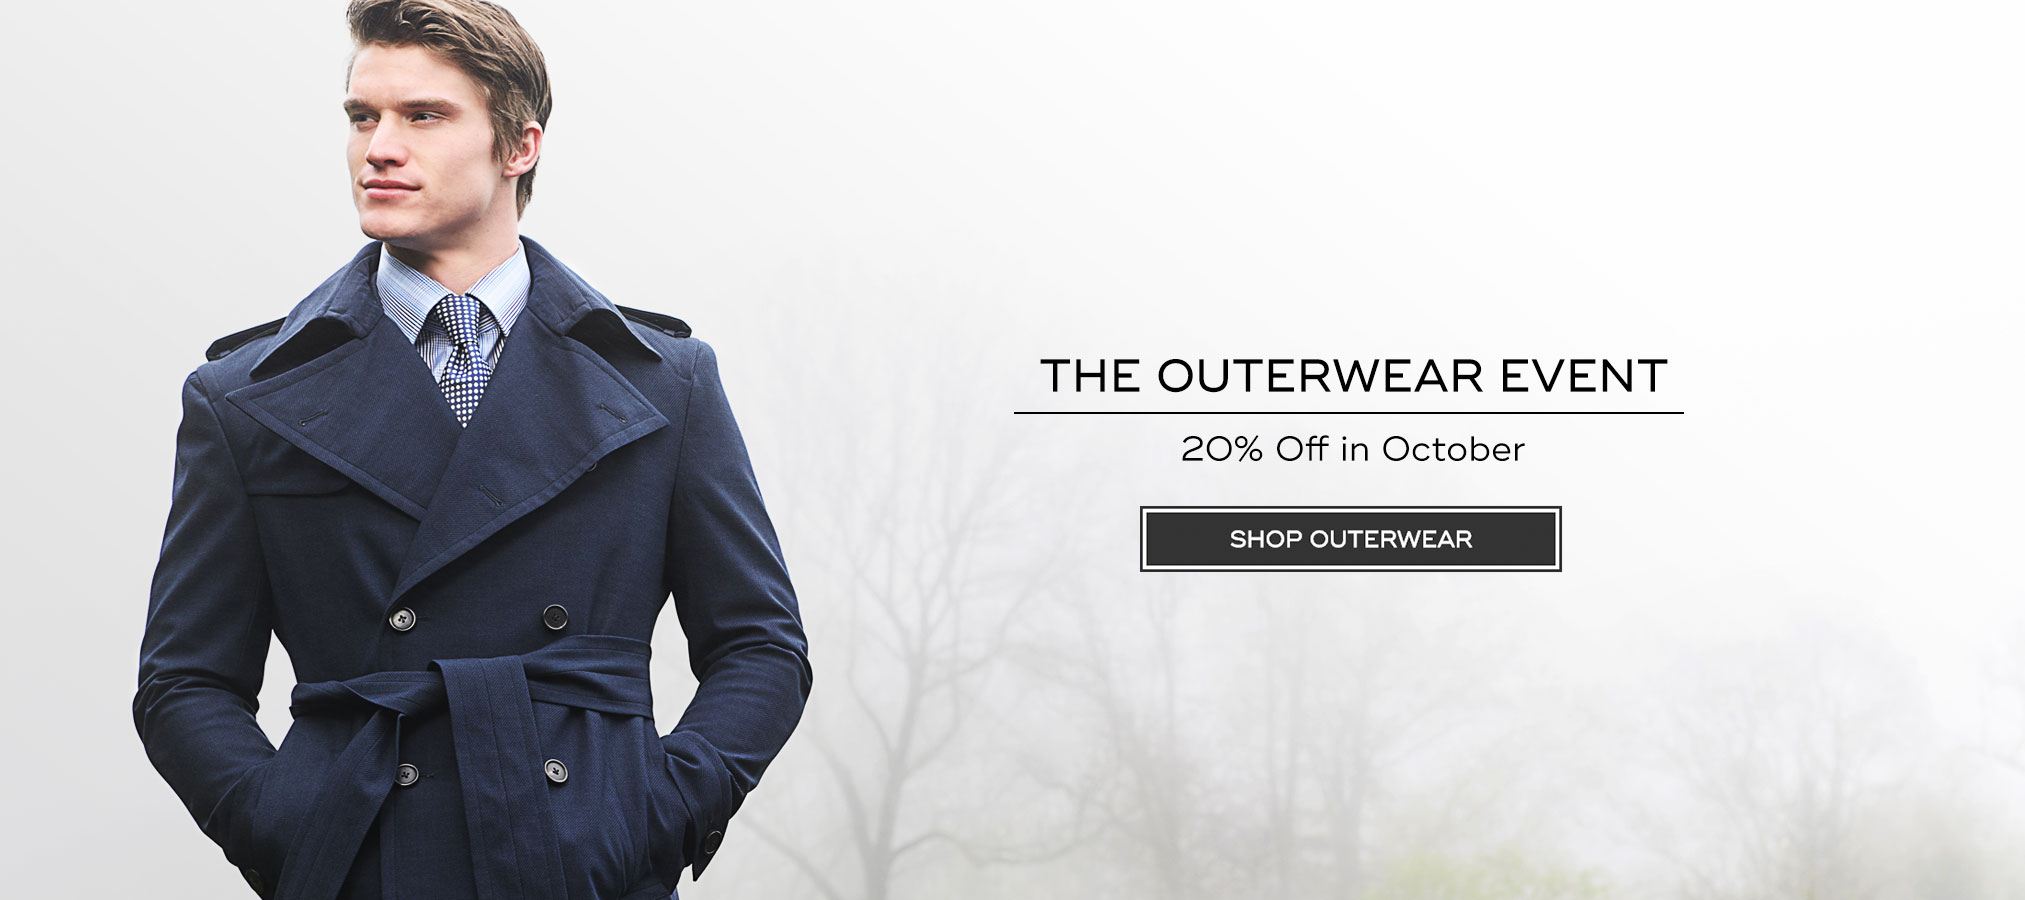 20% Off Bespoke Outerwear in October